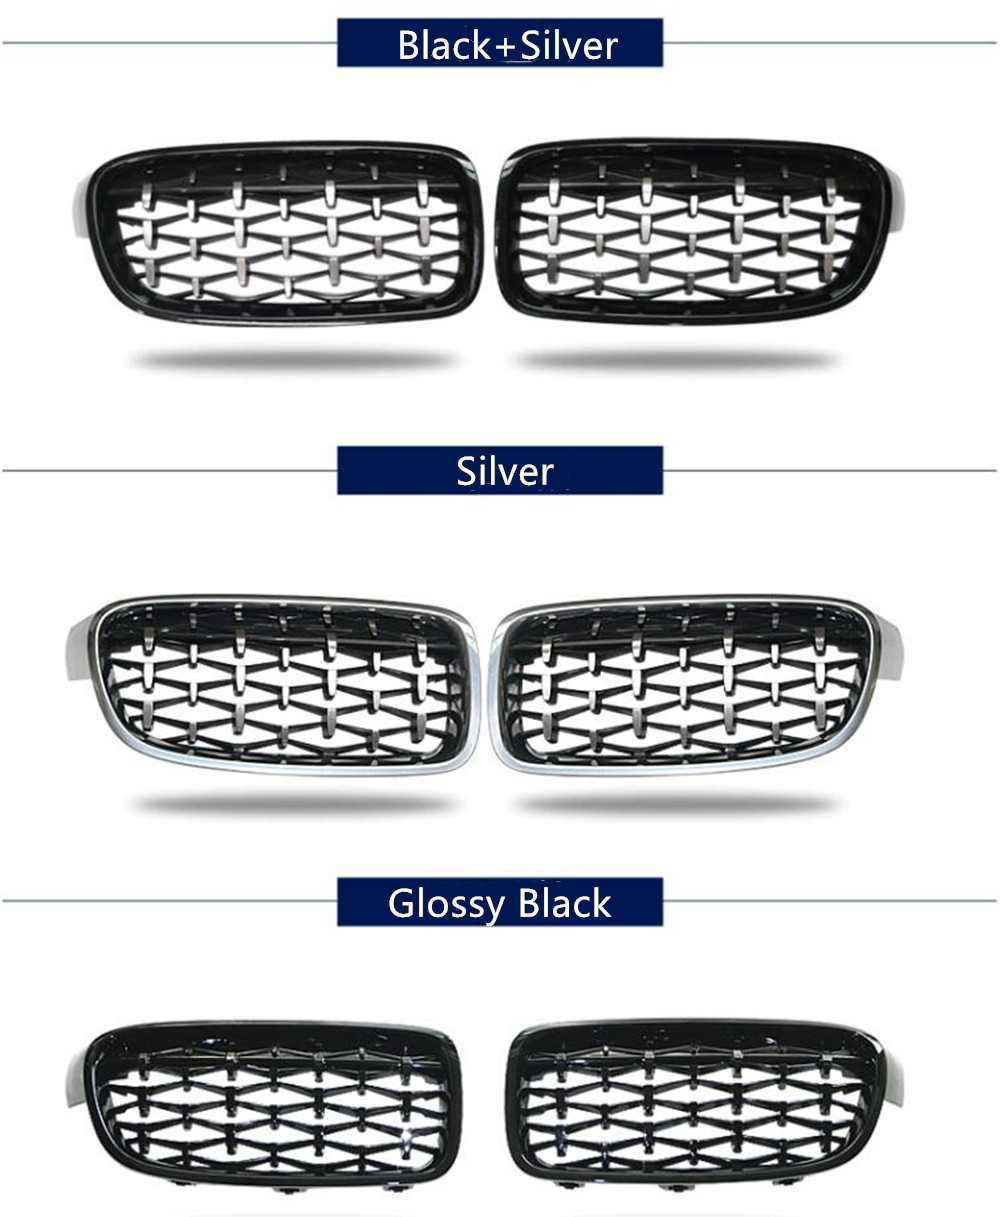 Top Quality A Pair Kidney <font><b>Grill</b></font> Racing Grille For Bmw F10 F18 F30 F35 <font><b>G30</b></font> G38 X1 X3 X4 X5 X6 Car Tuning Front <font><b>Grills</b></font> image